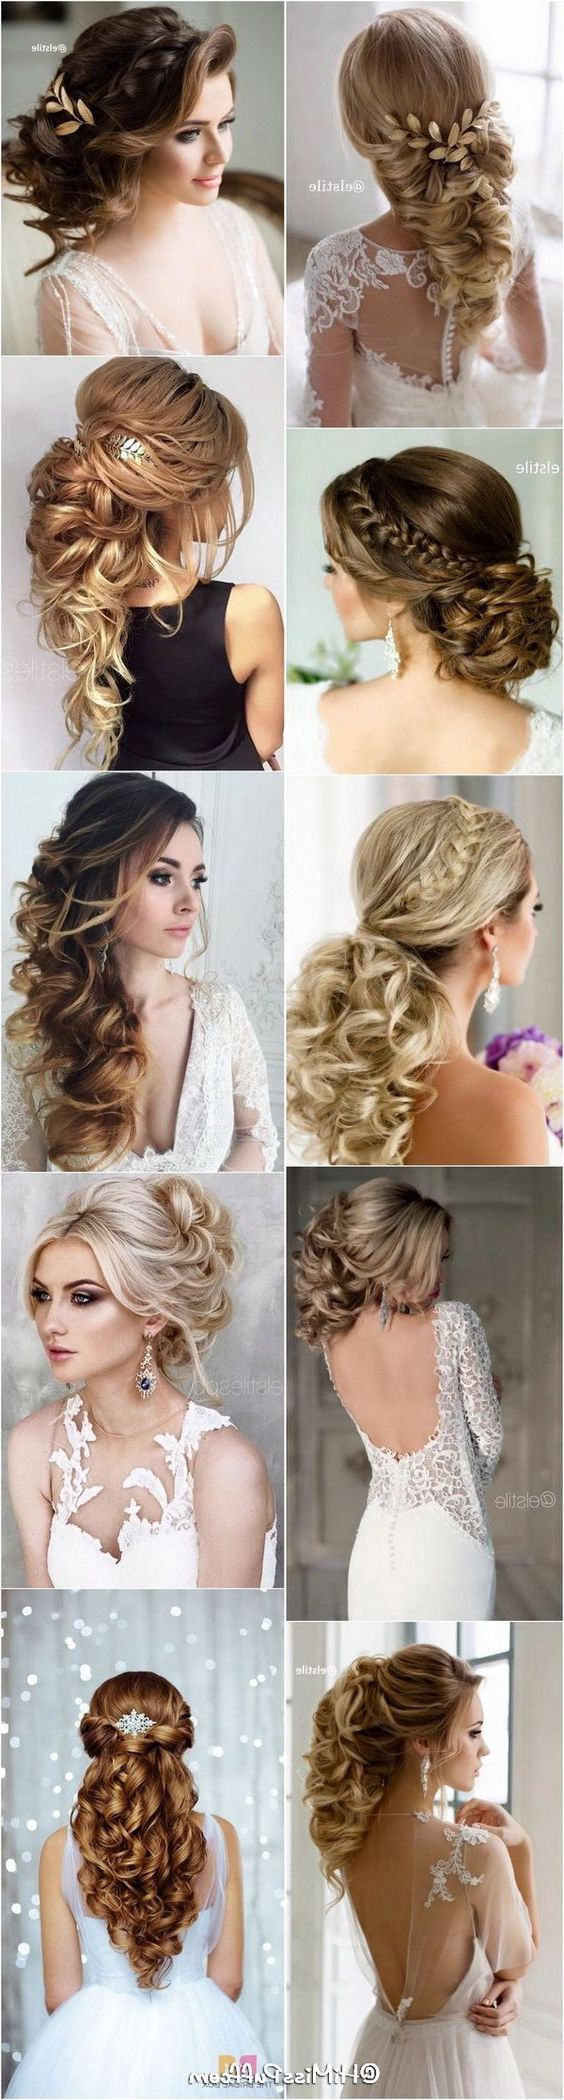 100+ Romantic Long Wedding Hairstyles 2020 – Curls, Half Up, Boho